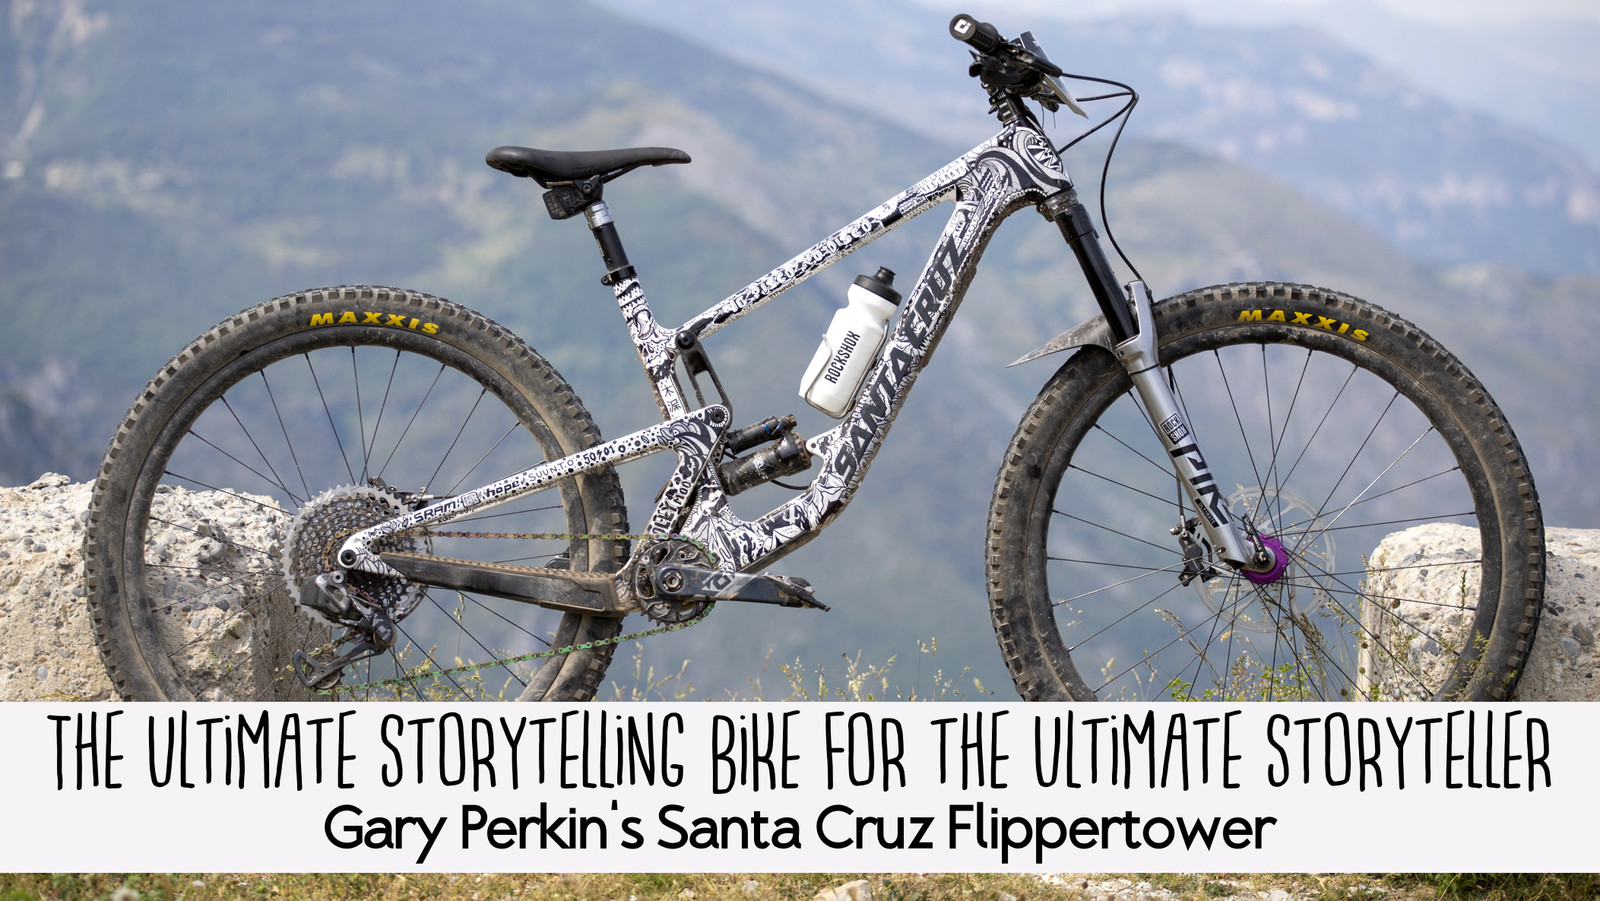 The Ultimate Storytelling Bike for the Ultimate Storyteller - Gary Perkin's Santa Cruz Flippertower